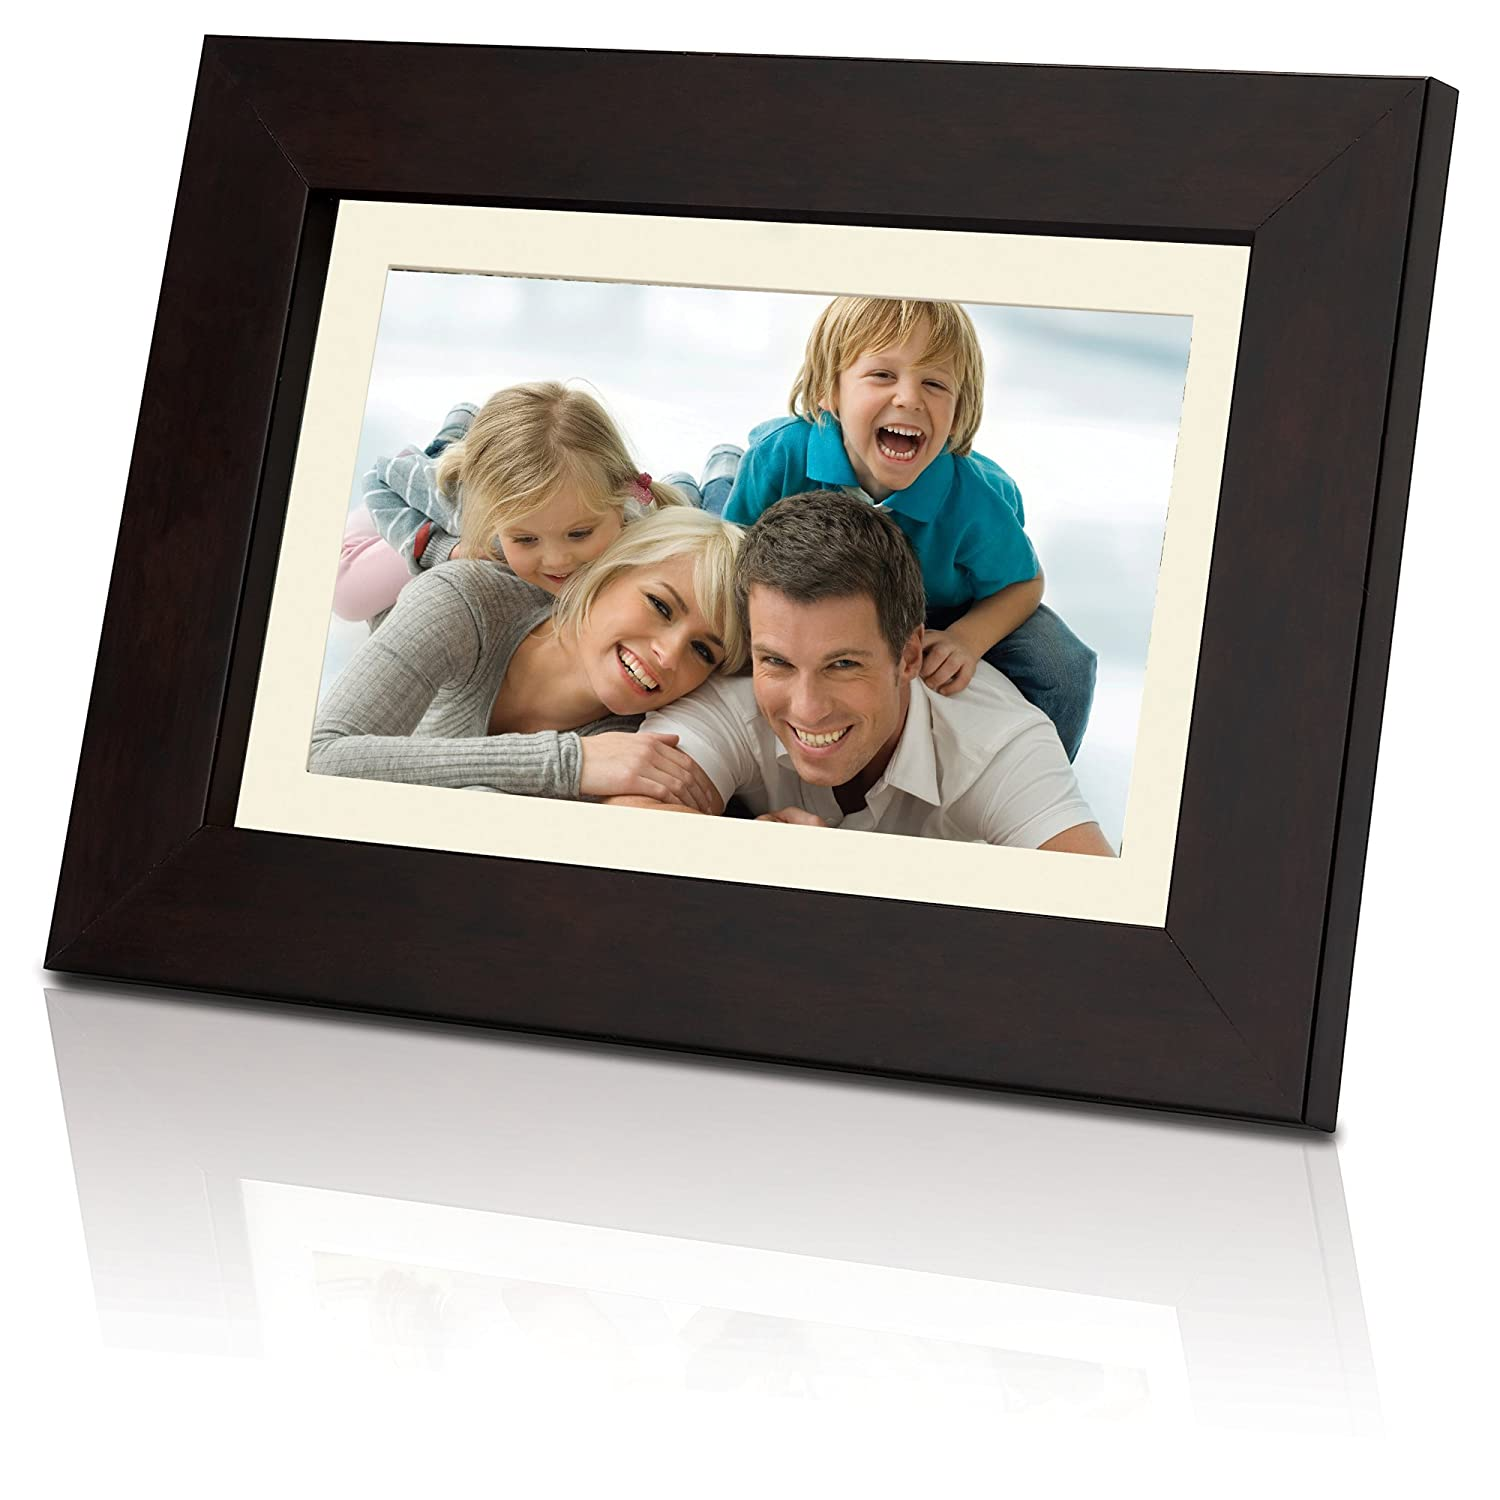 Coby Widescreen Digital Photo Frame with Photo Slideshow Mode - DP730